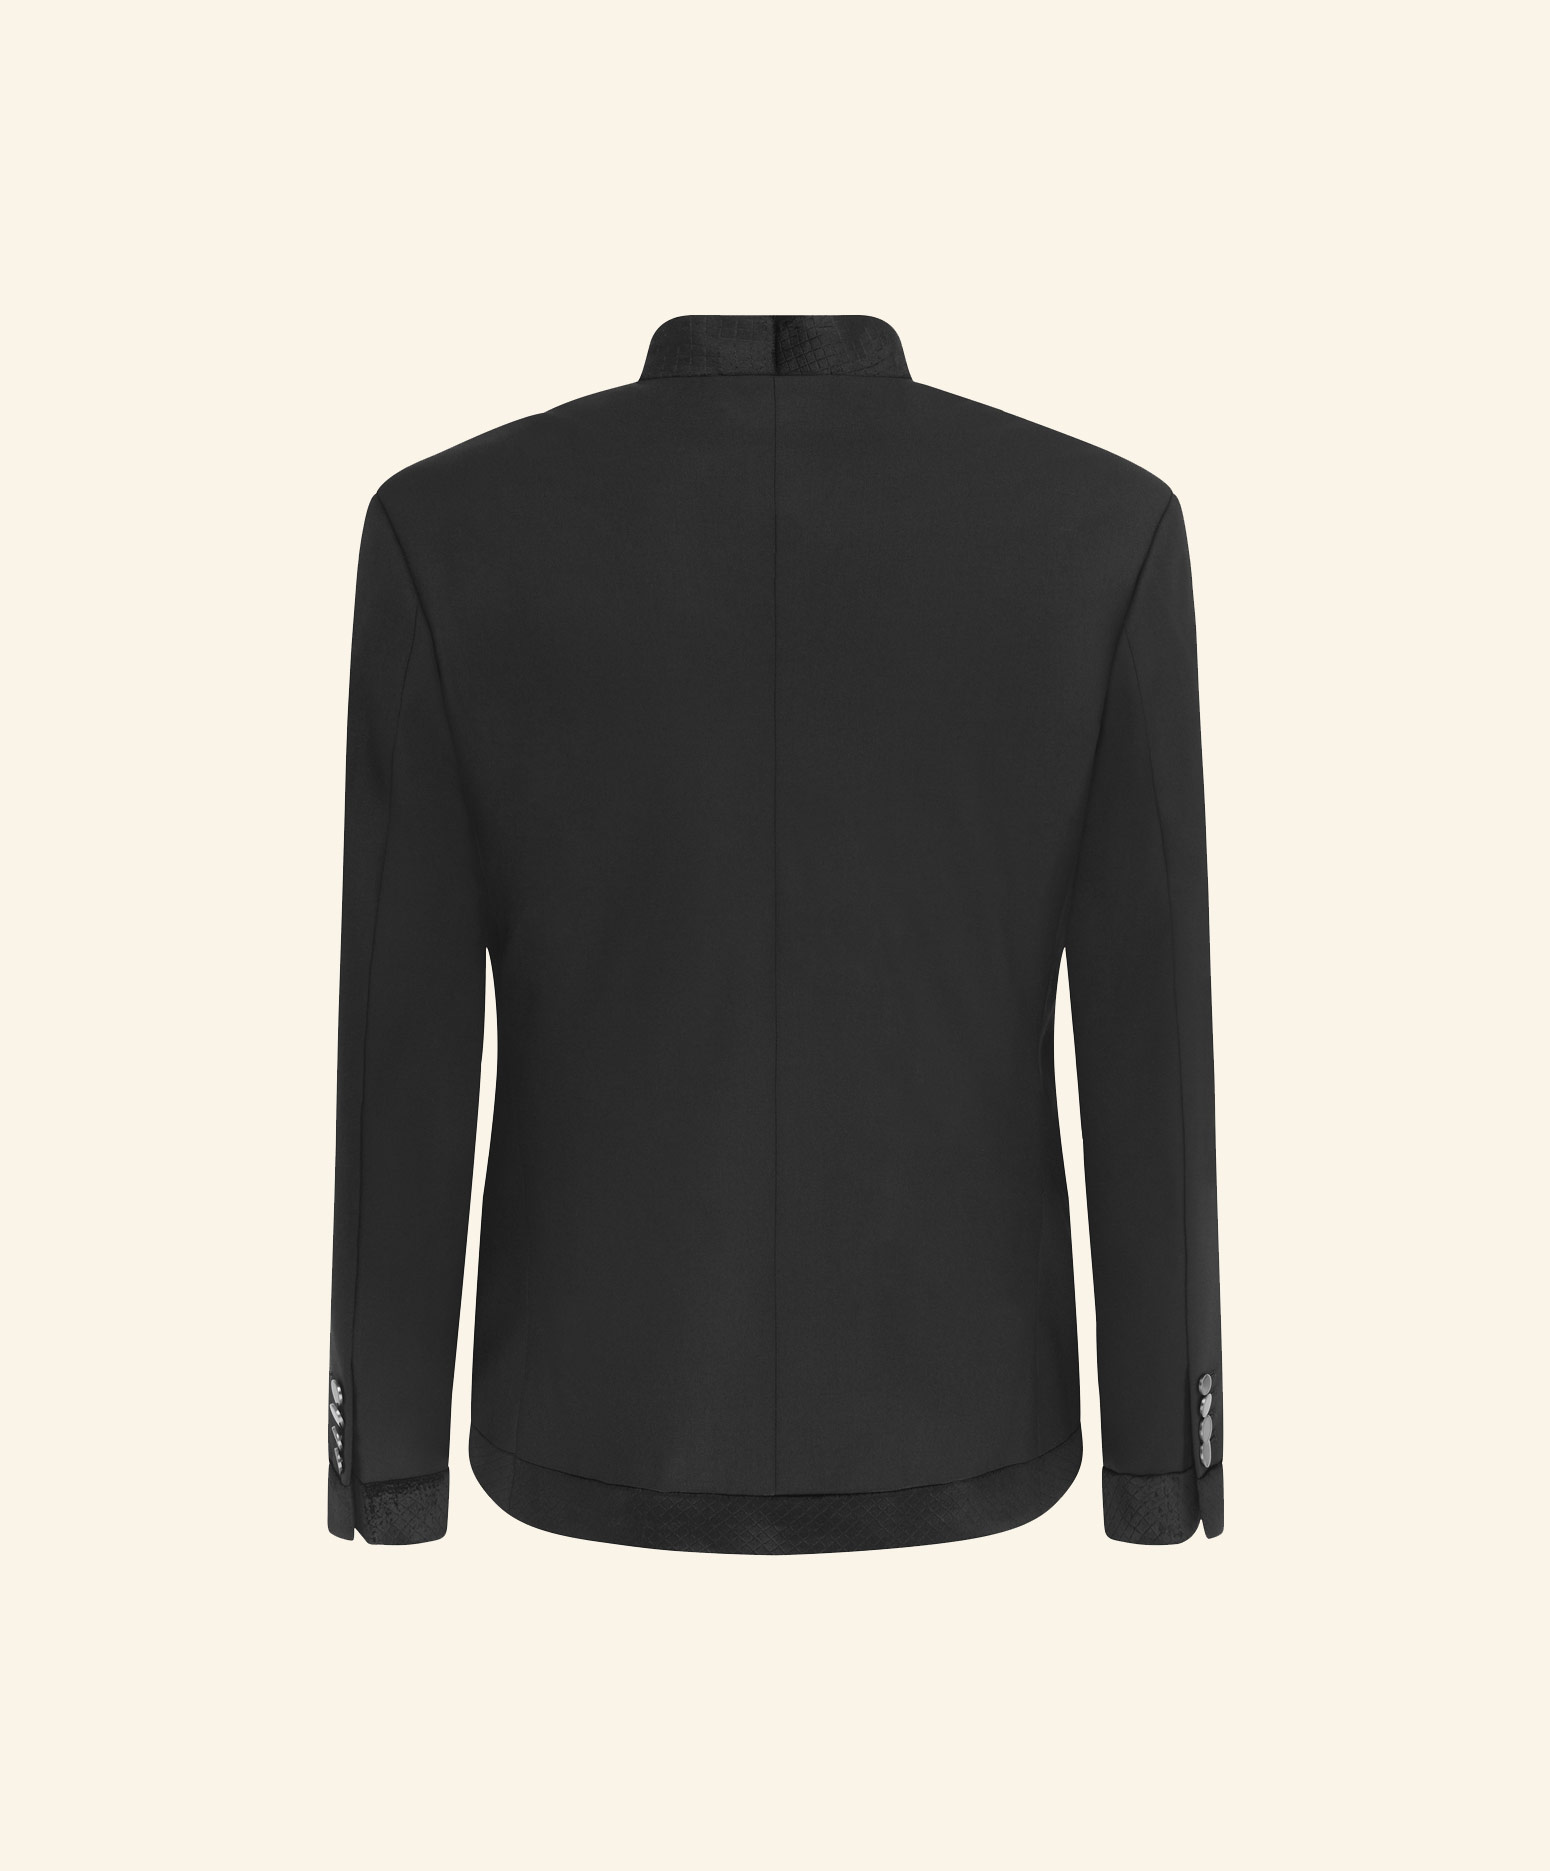 https://www.sannelondon.com/wp-content/uploads/2019/07/mens-velvet-trim-back.jpg